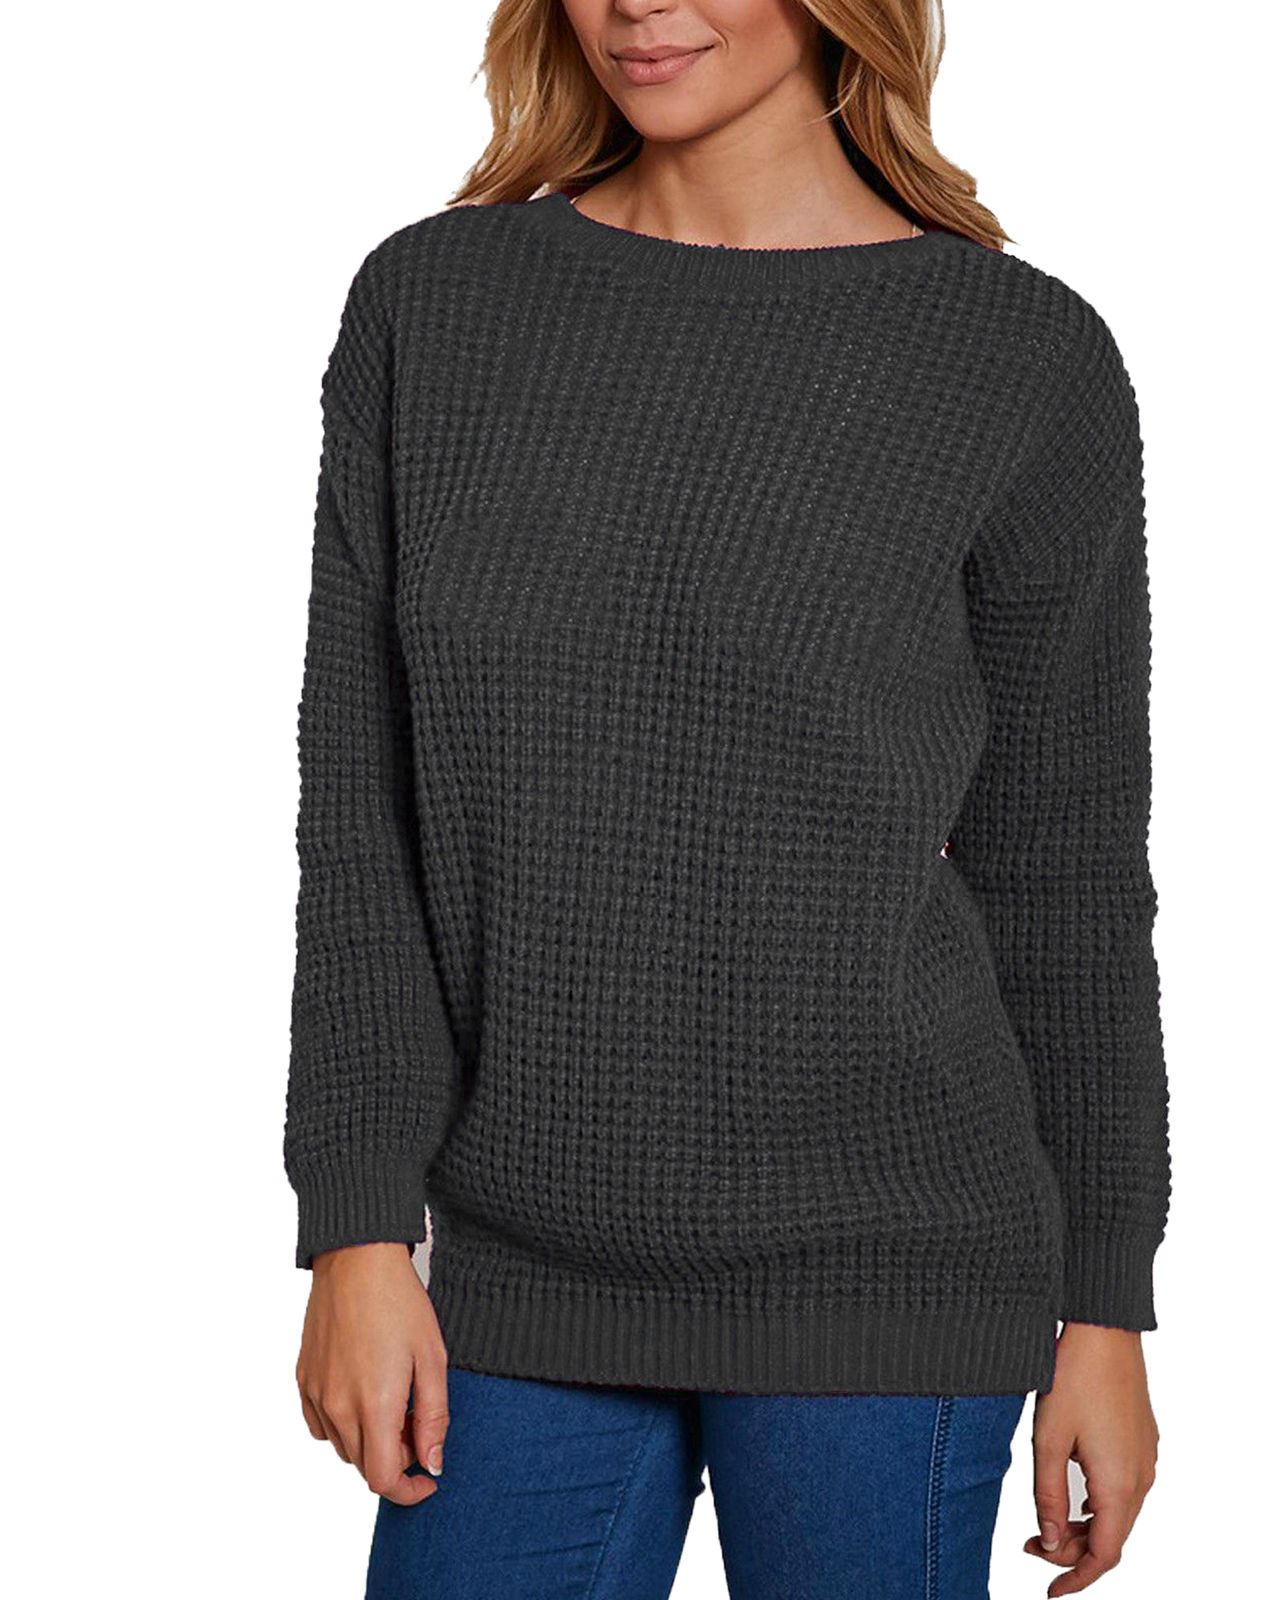 Ladies Women Knitted Over Size Fisherman Baggy Jumper